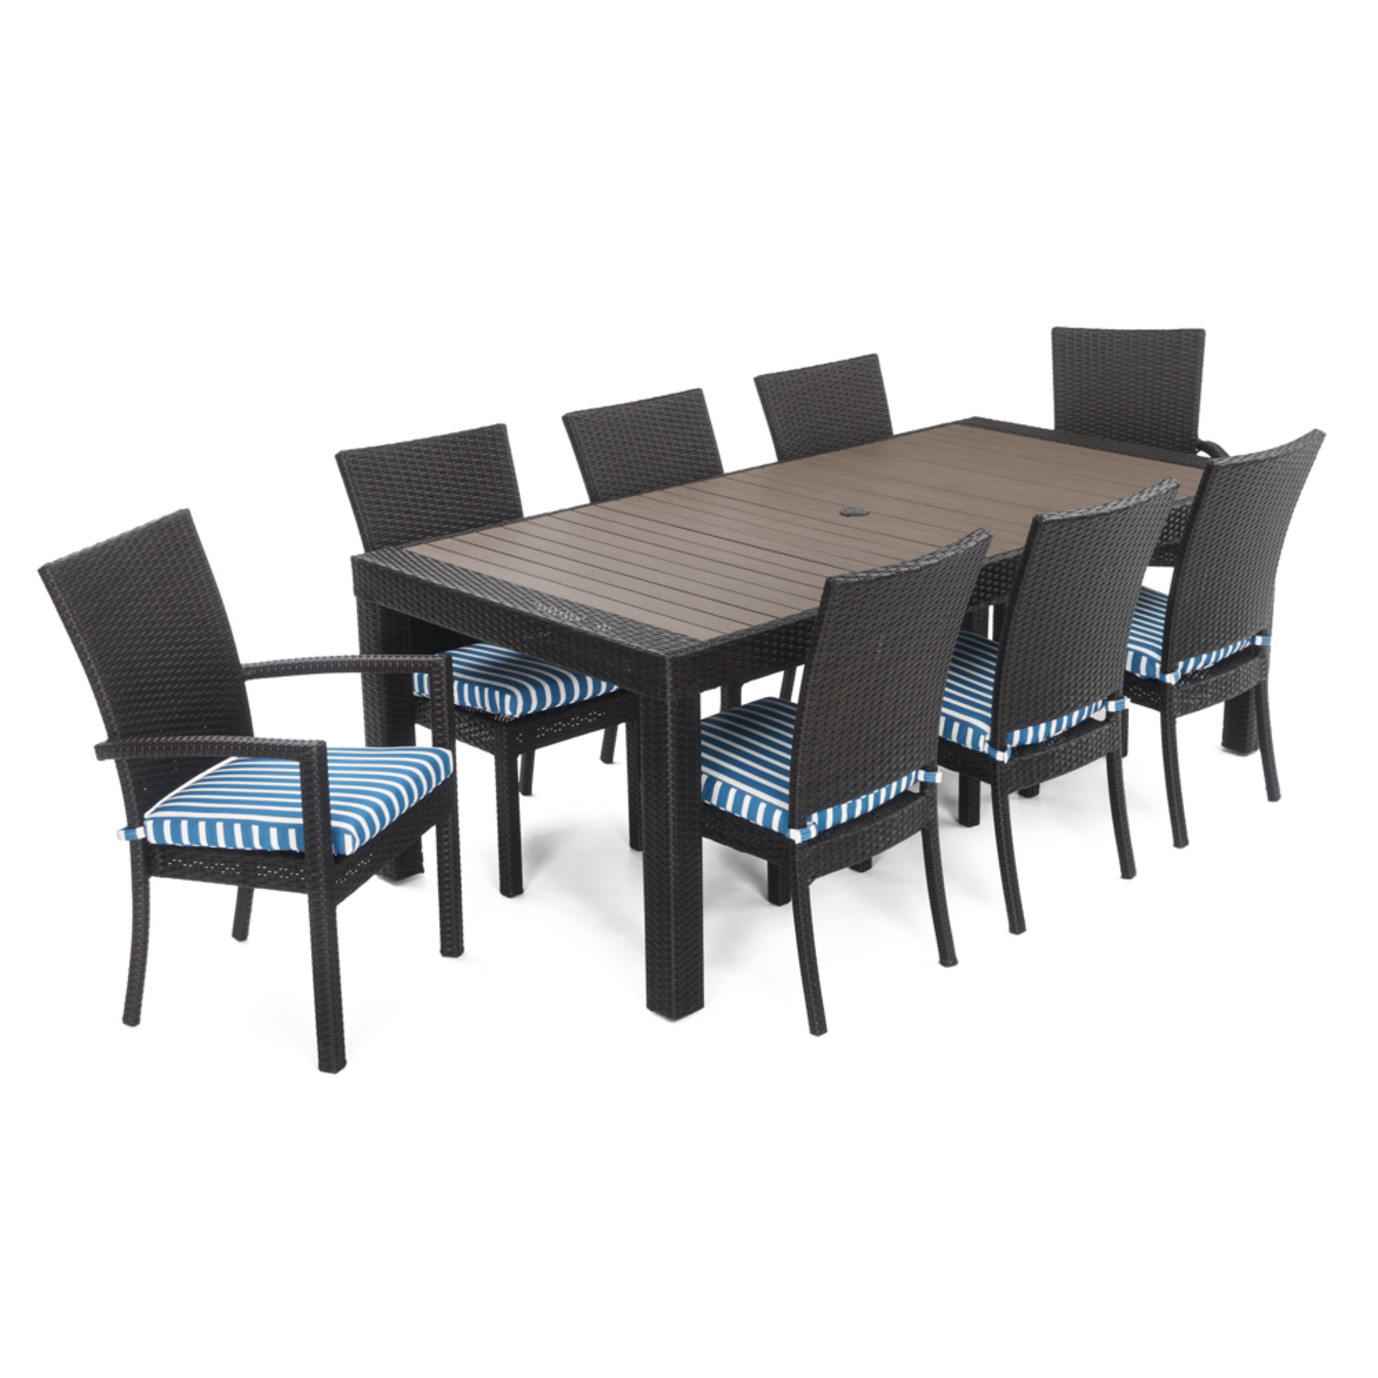 Deco™ 9pc Dining Set - Regatta Blue